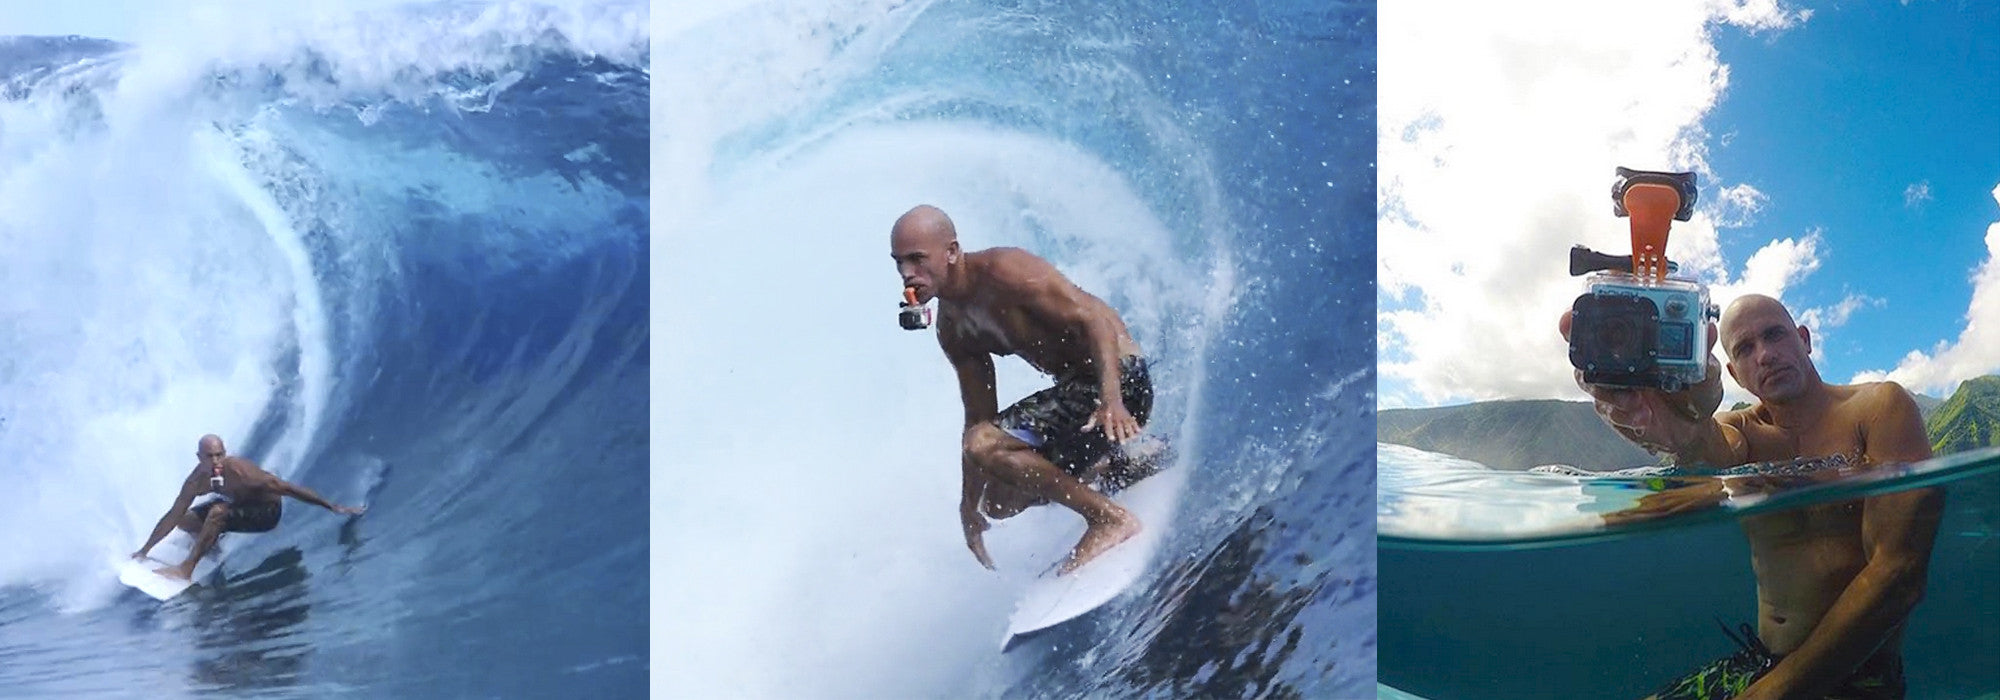 Kelly slater mouth mount